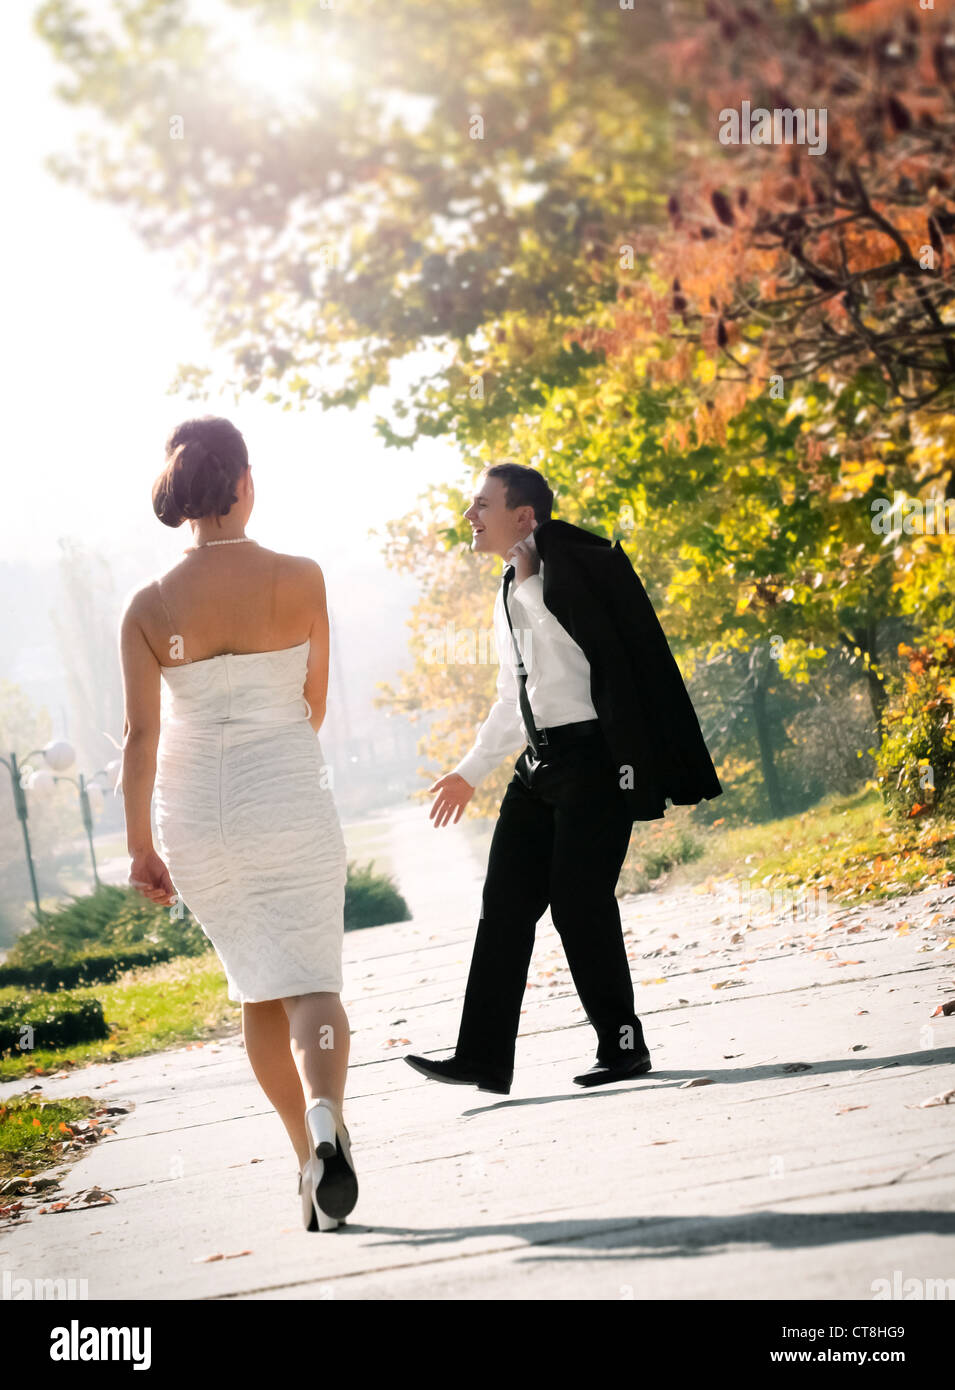 Young man Impressing a woman - Stock Image